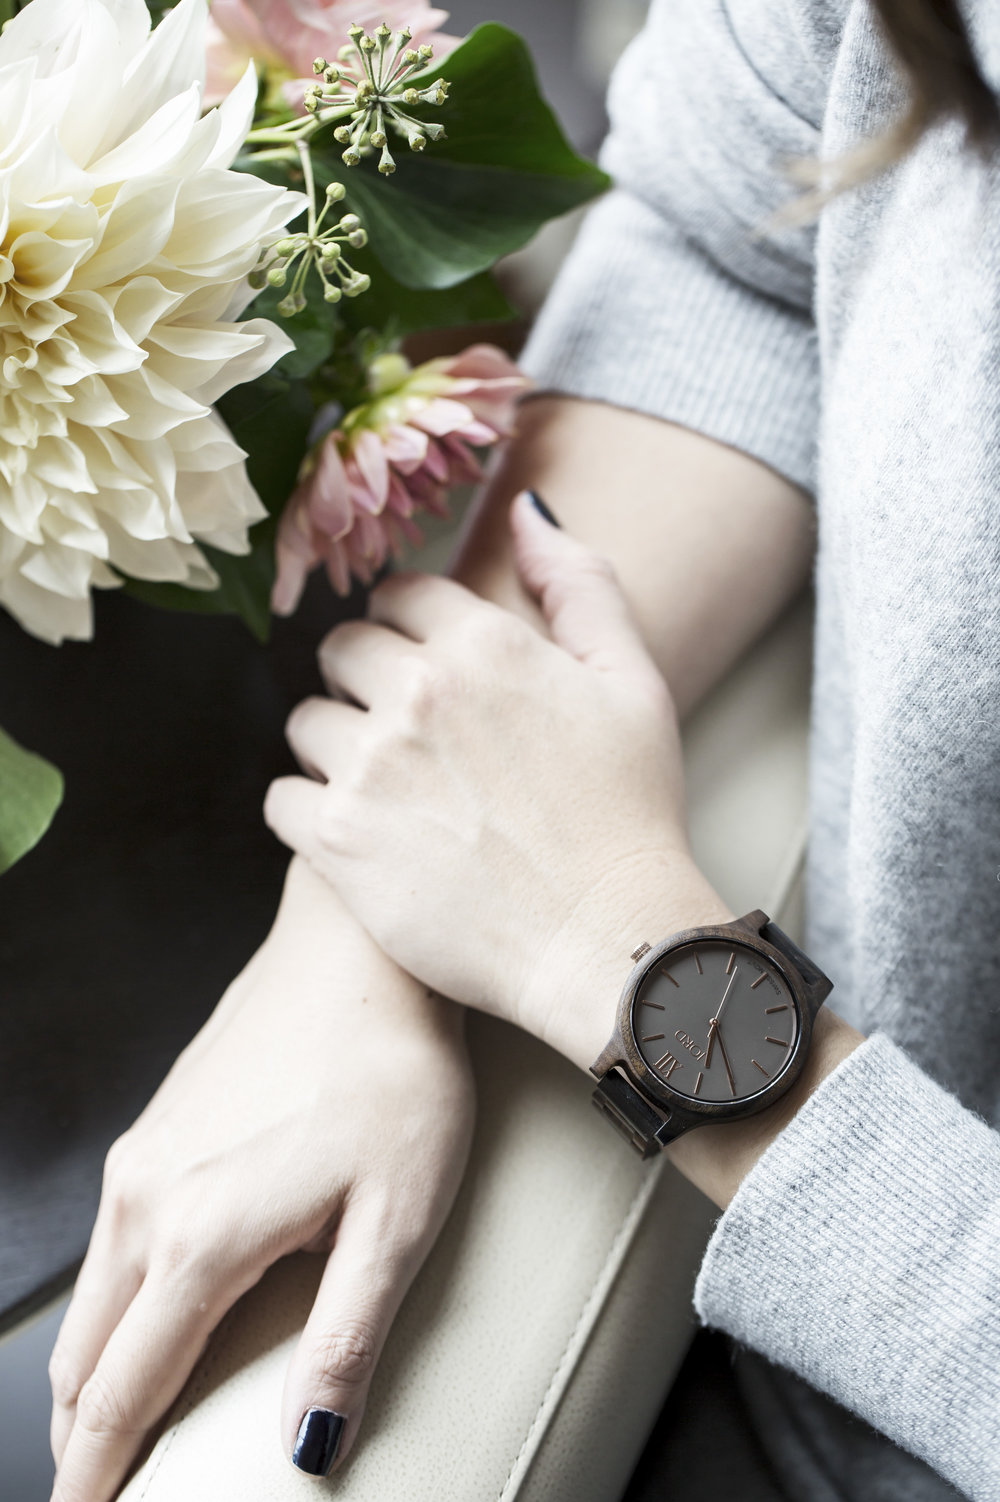 My beautiful FRANKIE watch by JORD, made of sandalwood. Photo: Airisa Photography, Flowers: The Flower Factory, Shot on location at the Fairmont Pacific Rim Hotel.